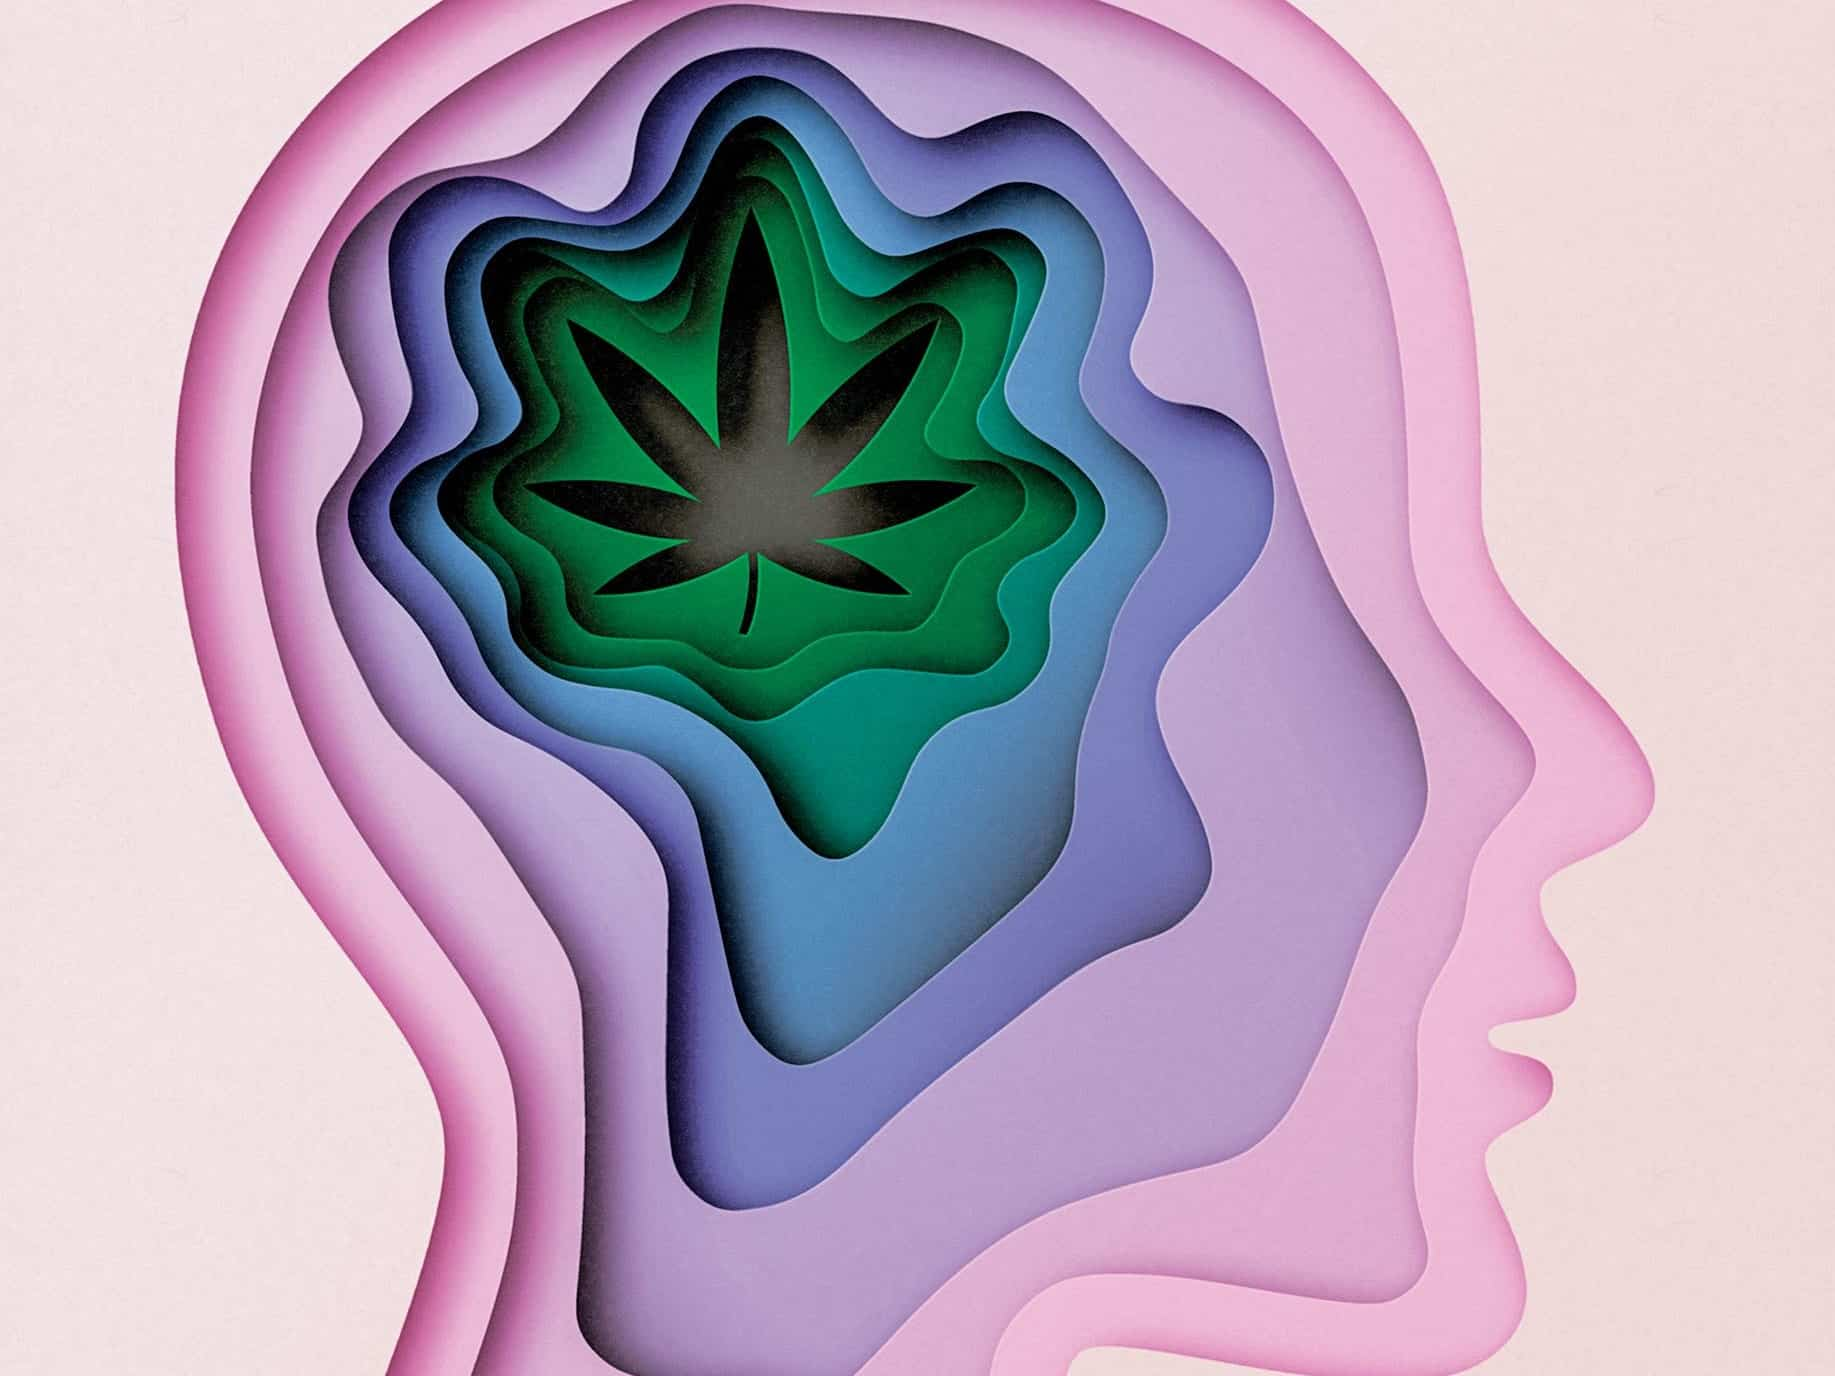 Use of Cannabis Can Affect Your Brain